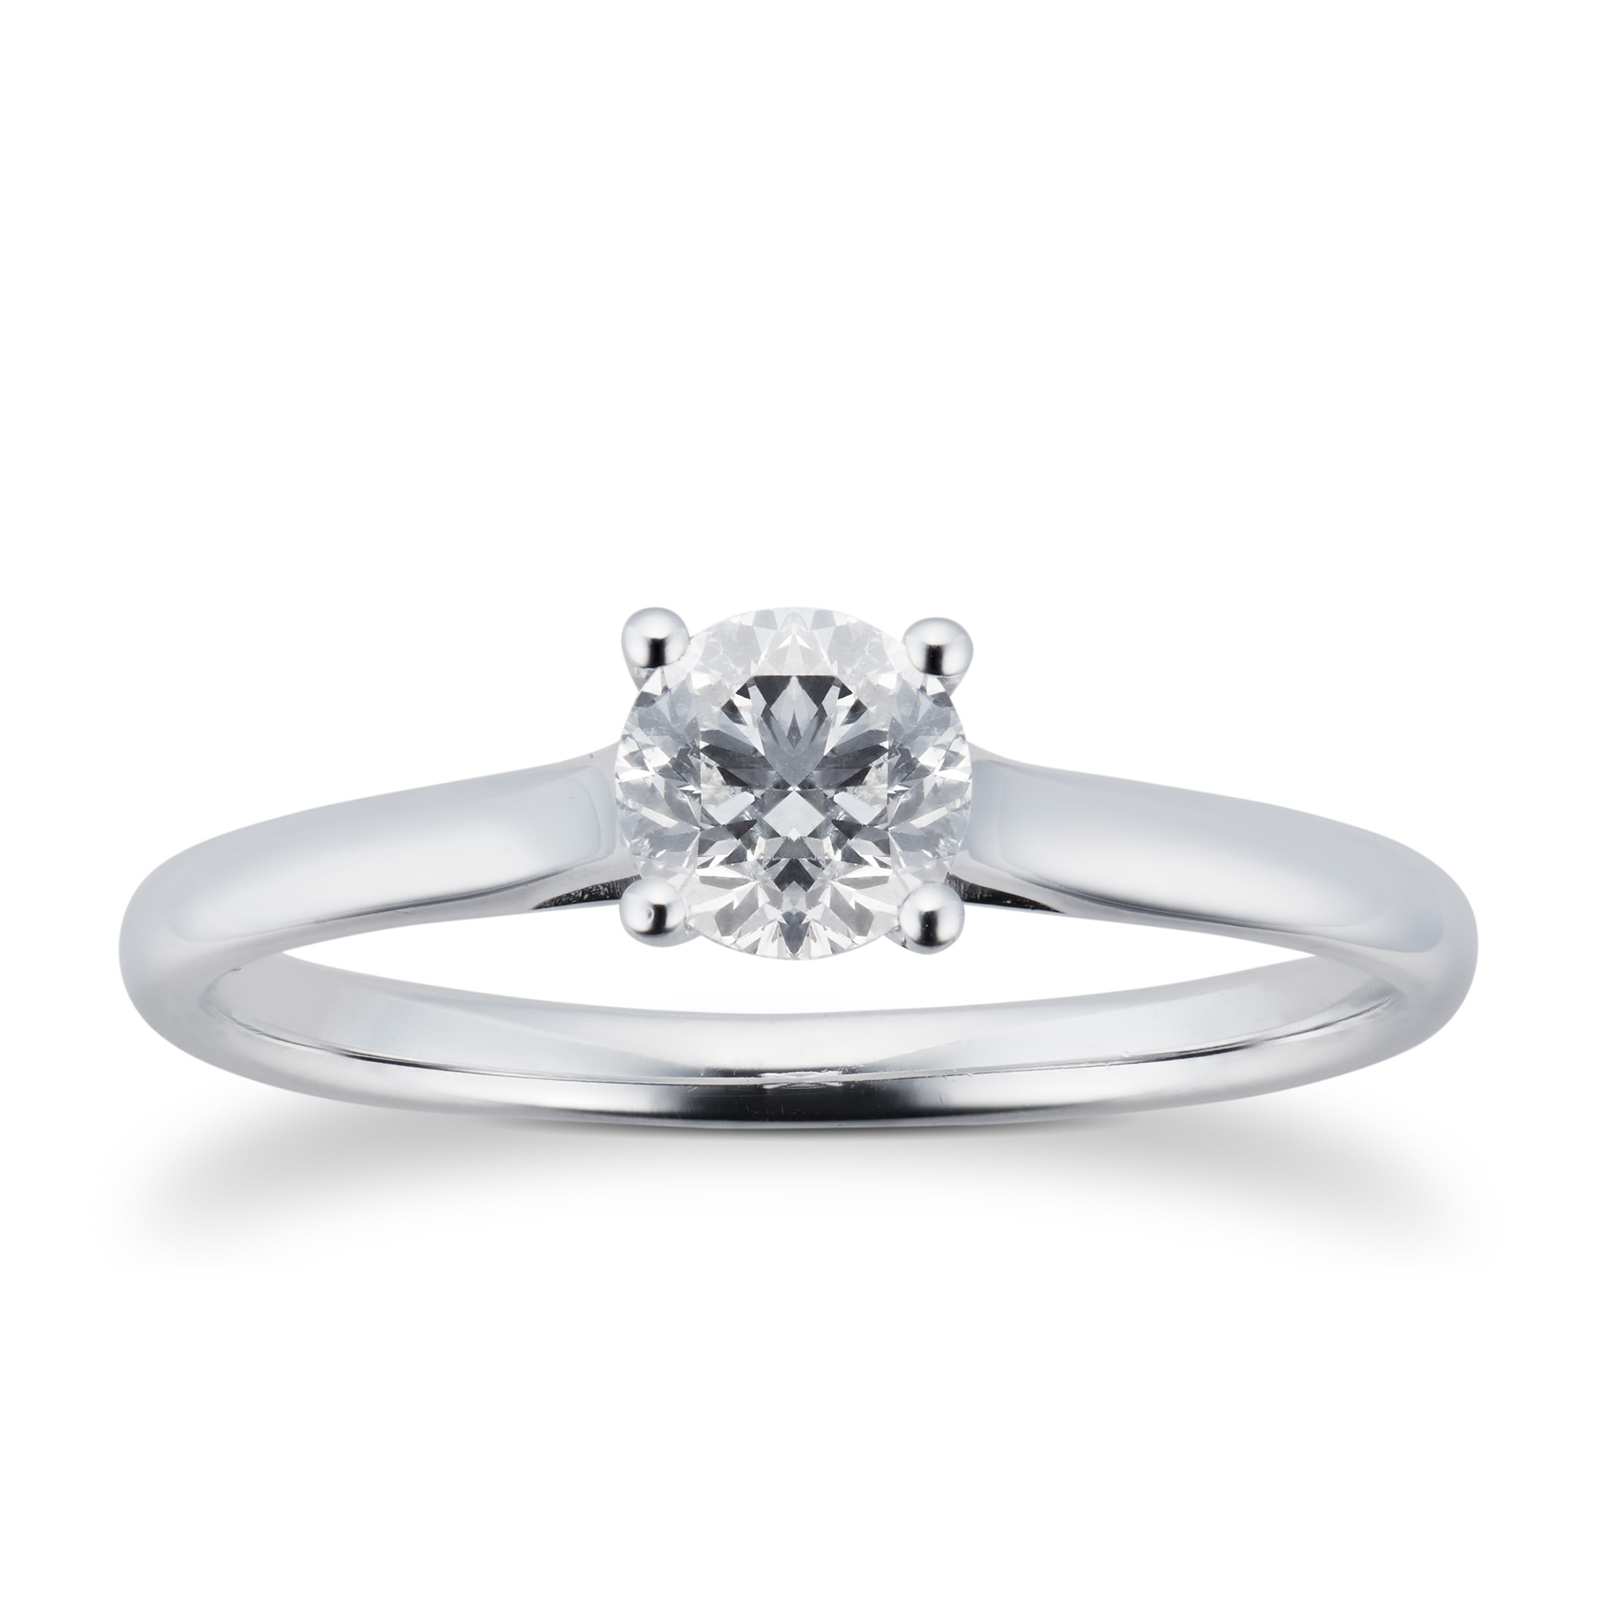 db engagement classic beers ring solitaire platinum jewellery de